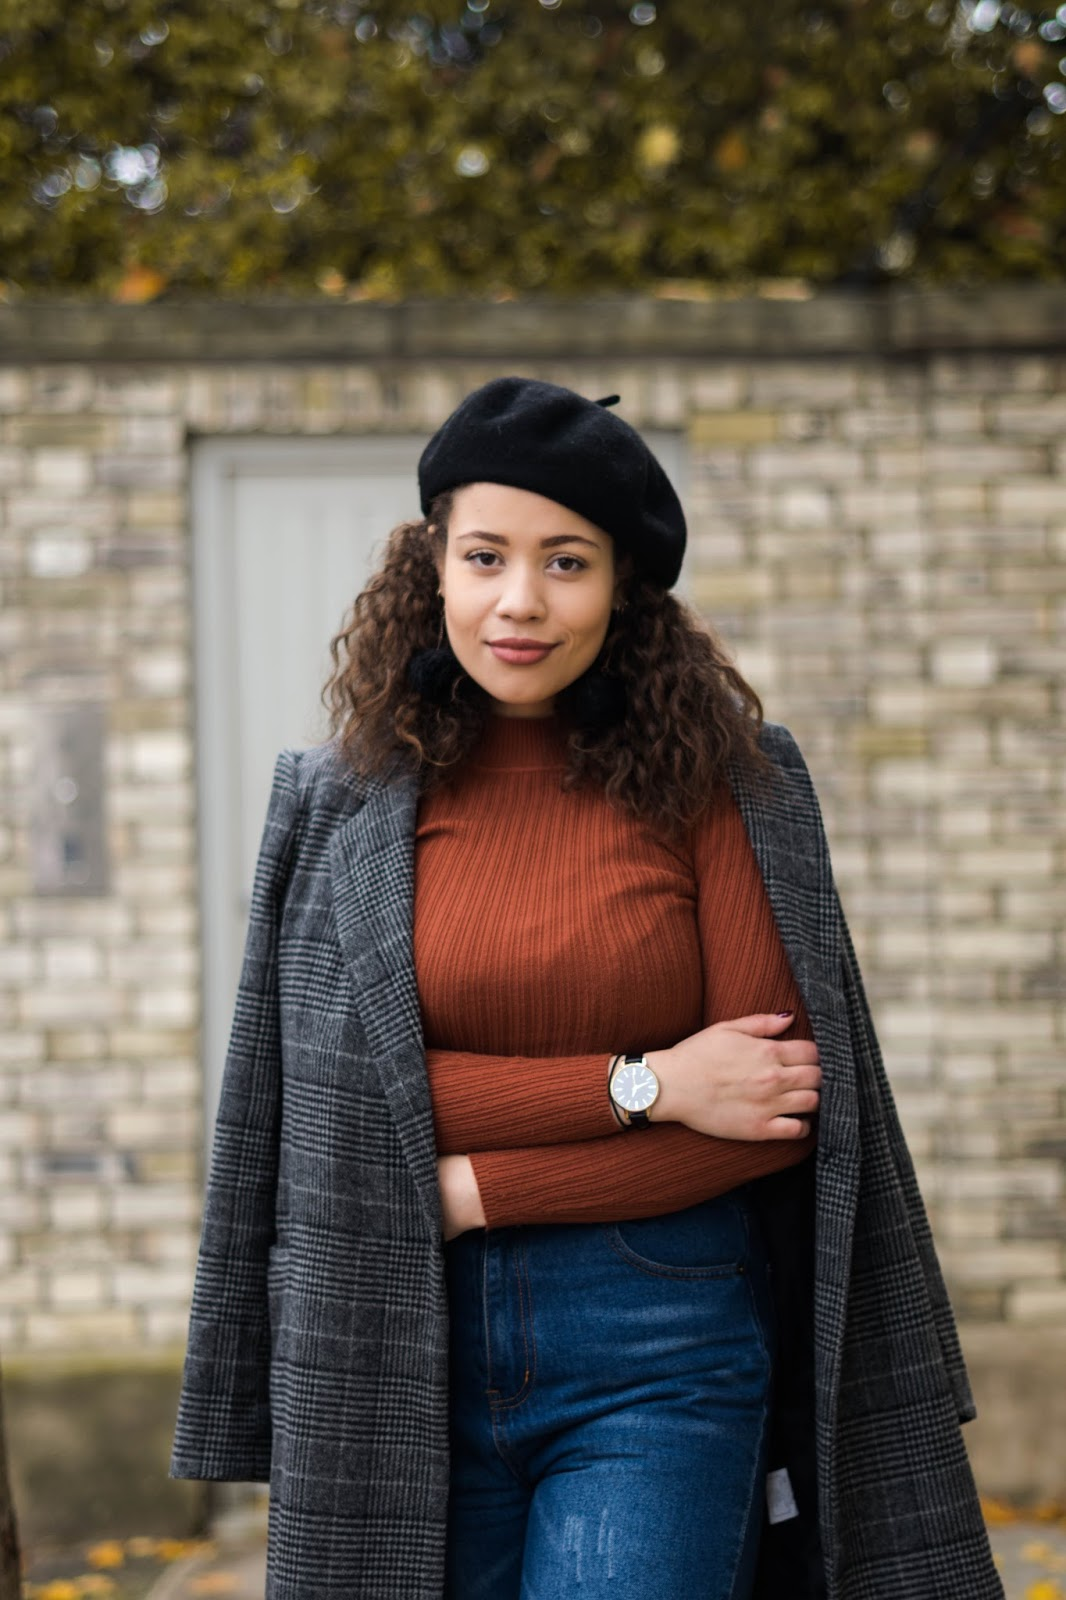 Eboni wearing a black beret with an autumnal jumper and coat